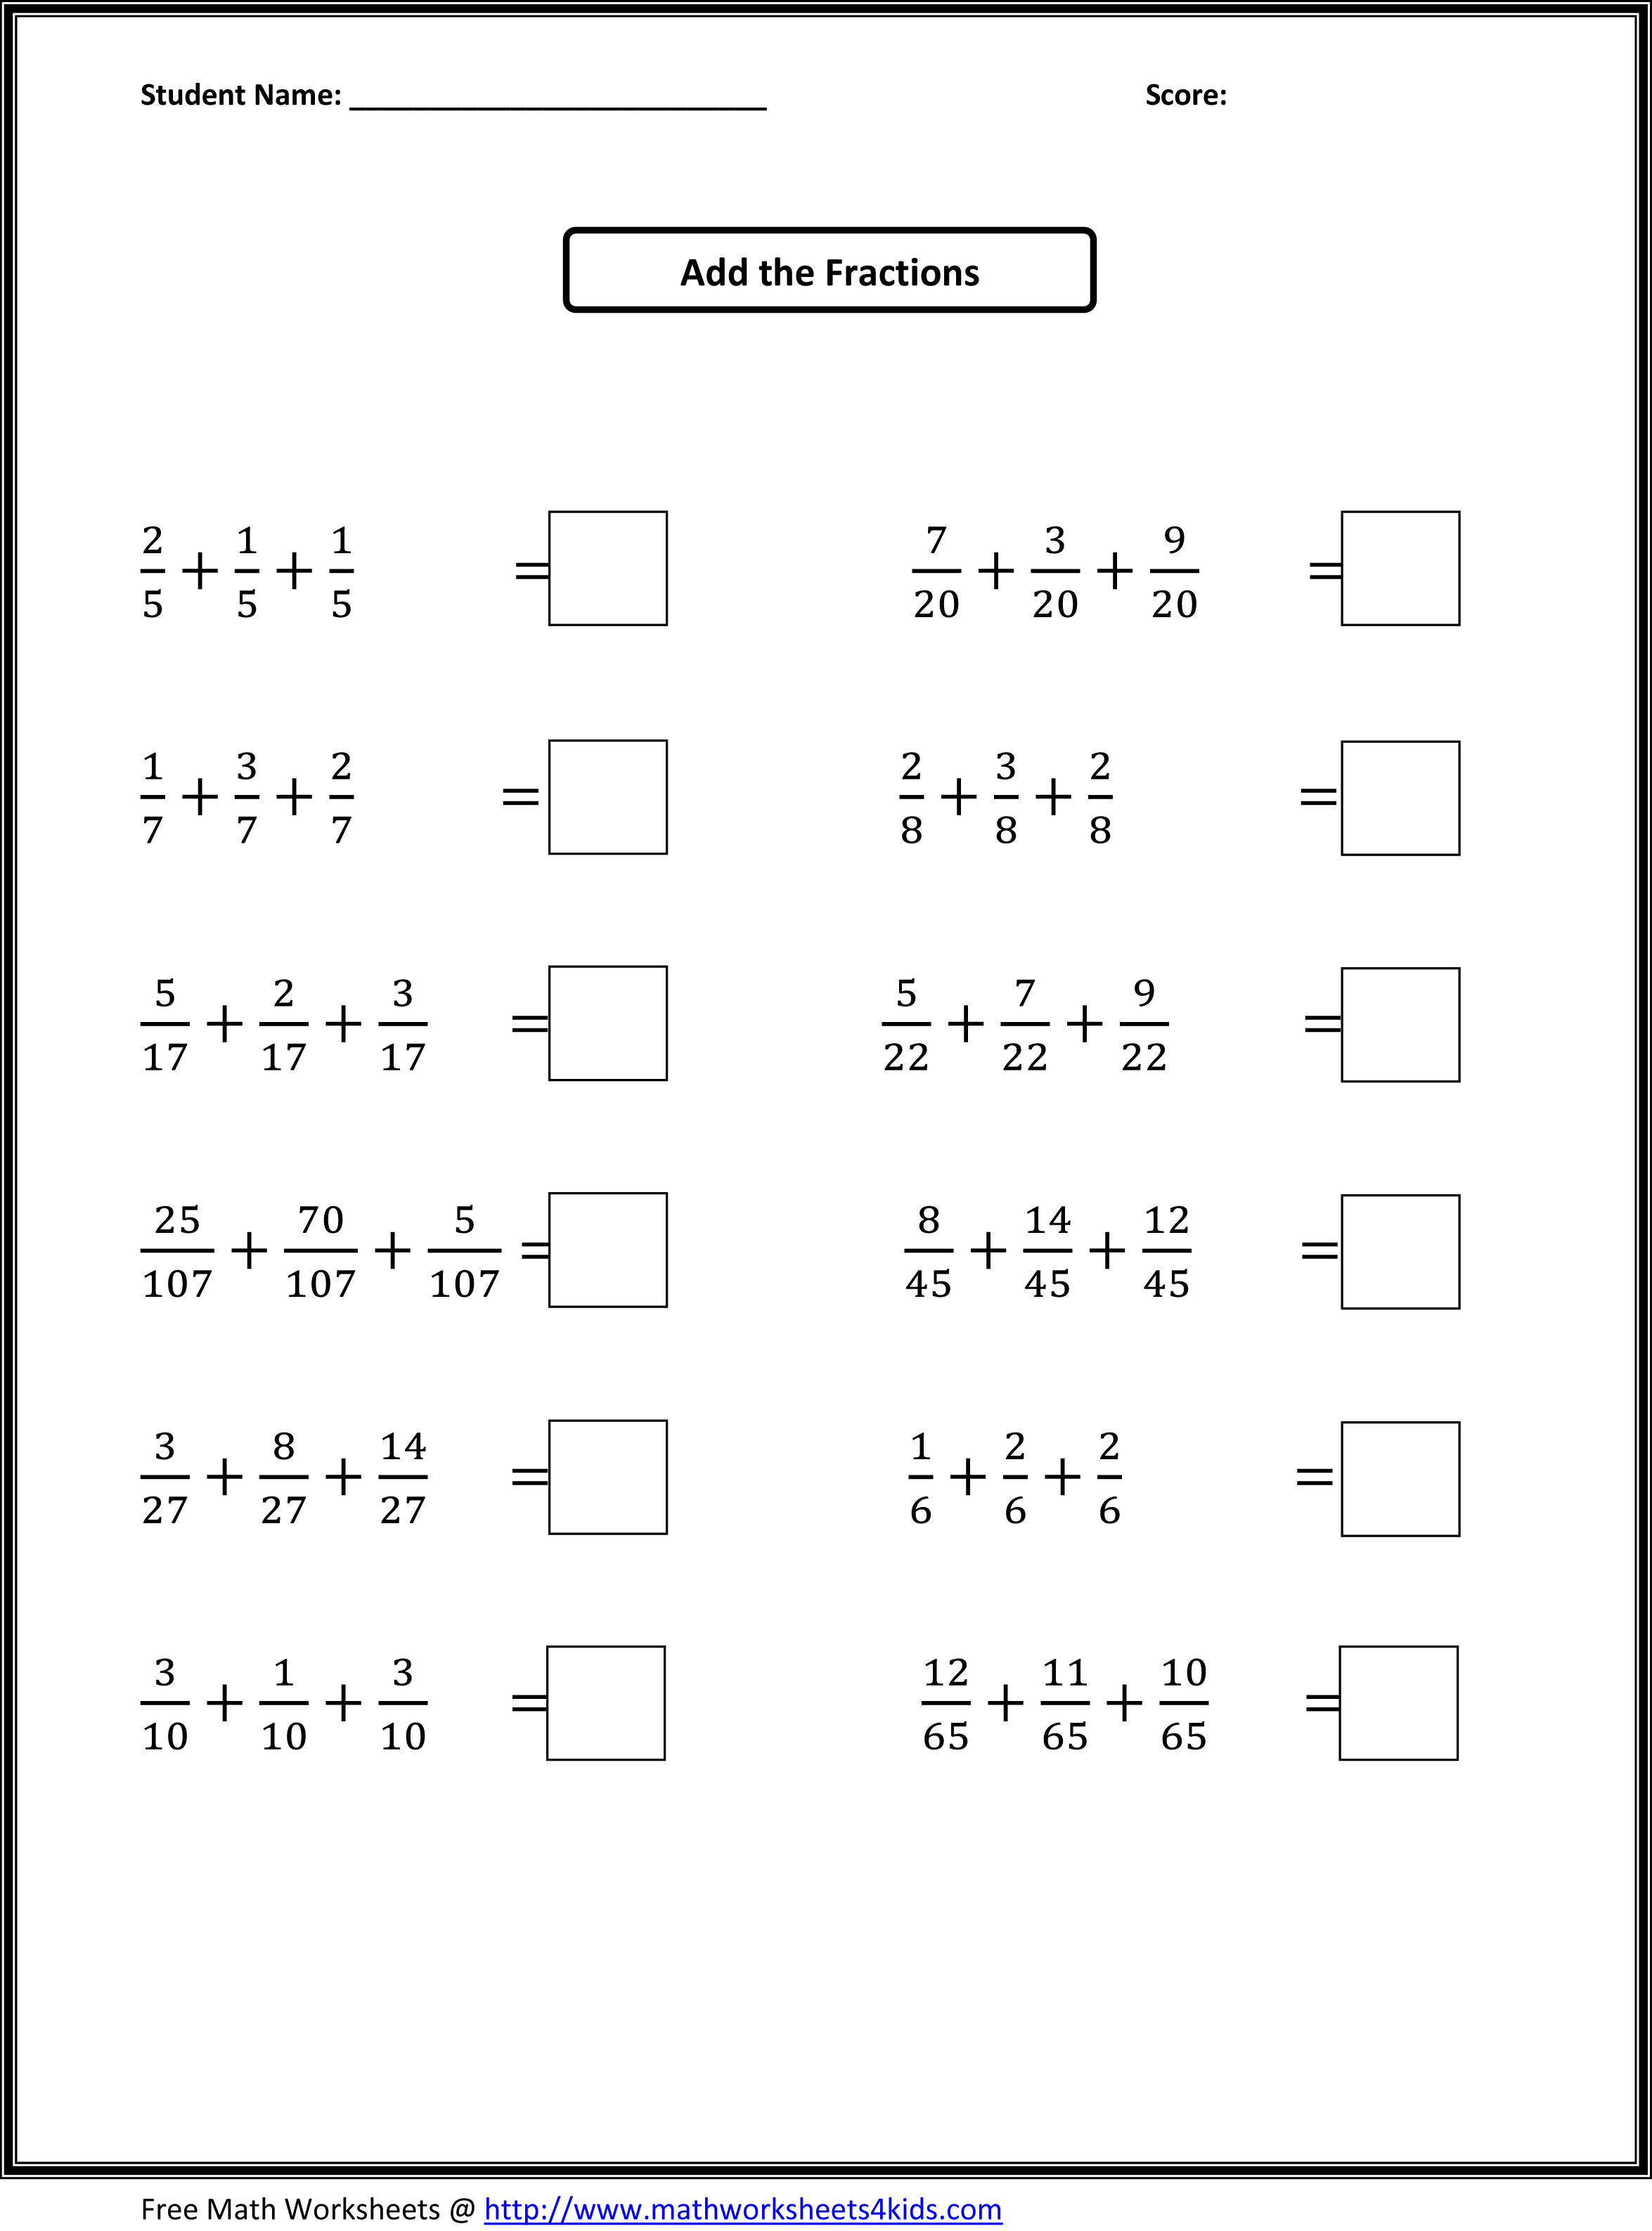 math worksheet : 4th grade fraction printable worksheets  worksheets : Free Printable Equivalent Fractions Worksheets